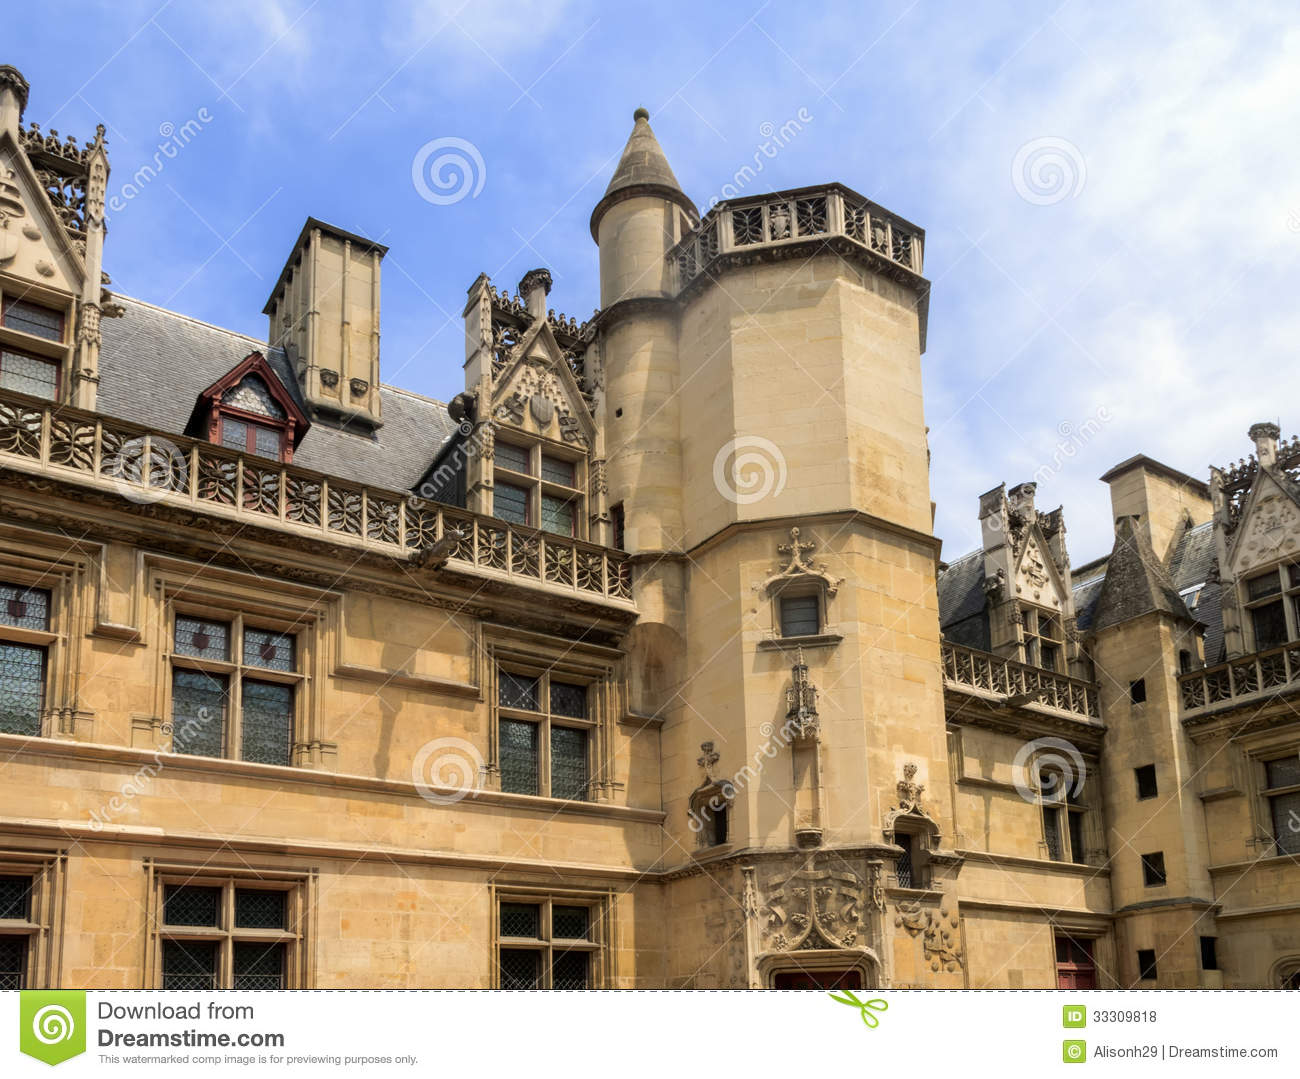 Musee Cluny muzeum